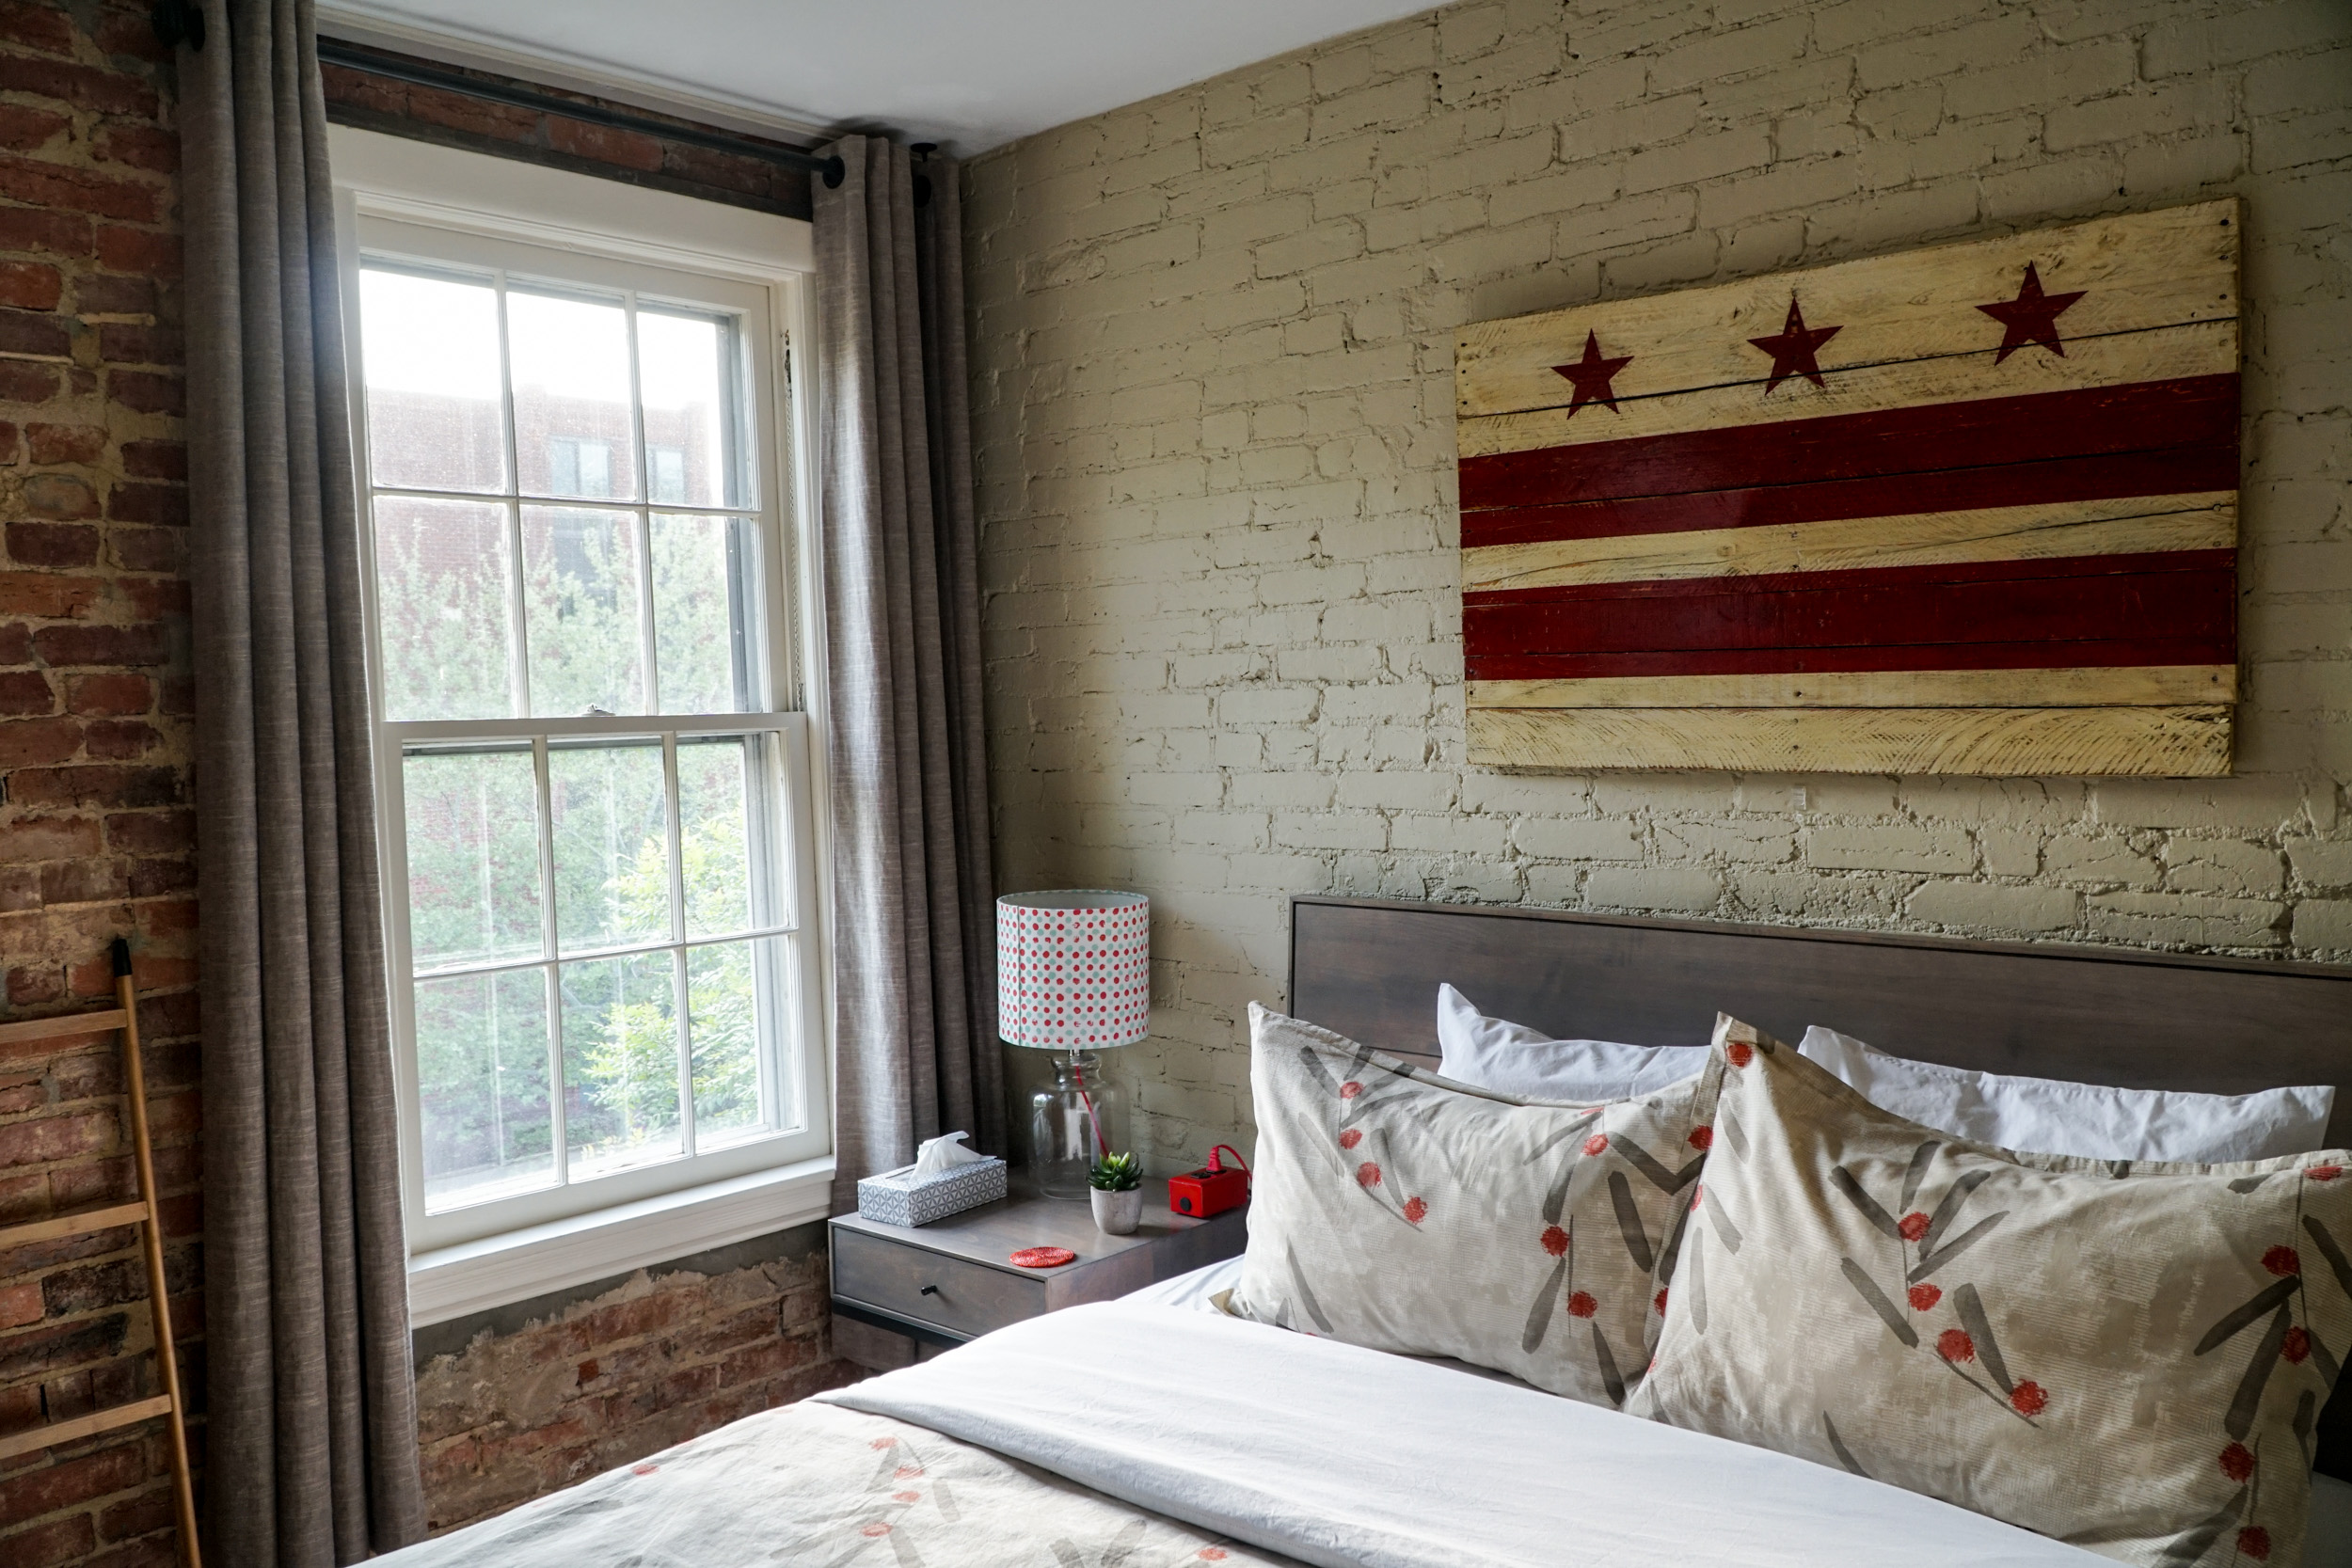 Washington DC Airbnb